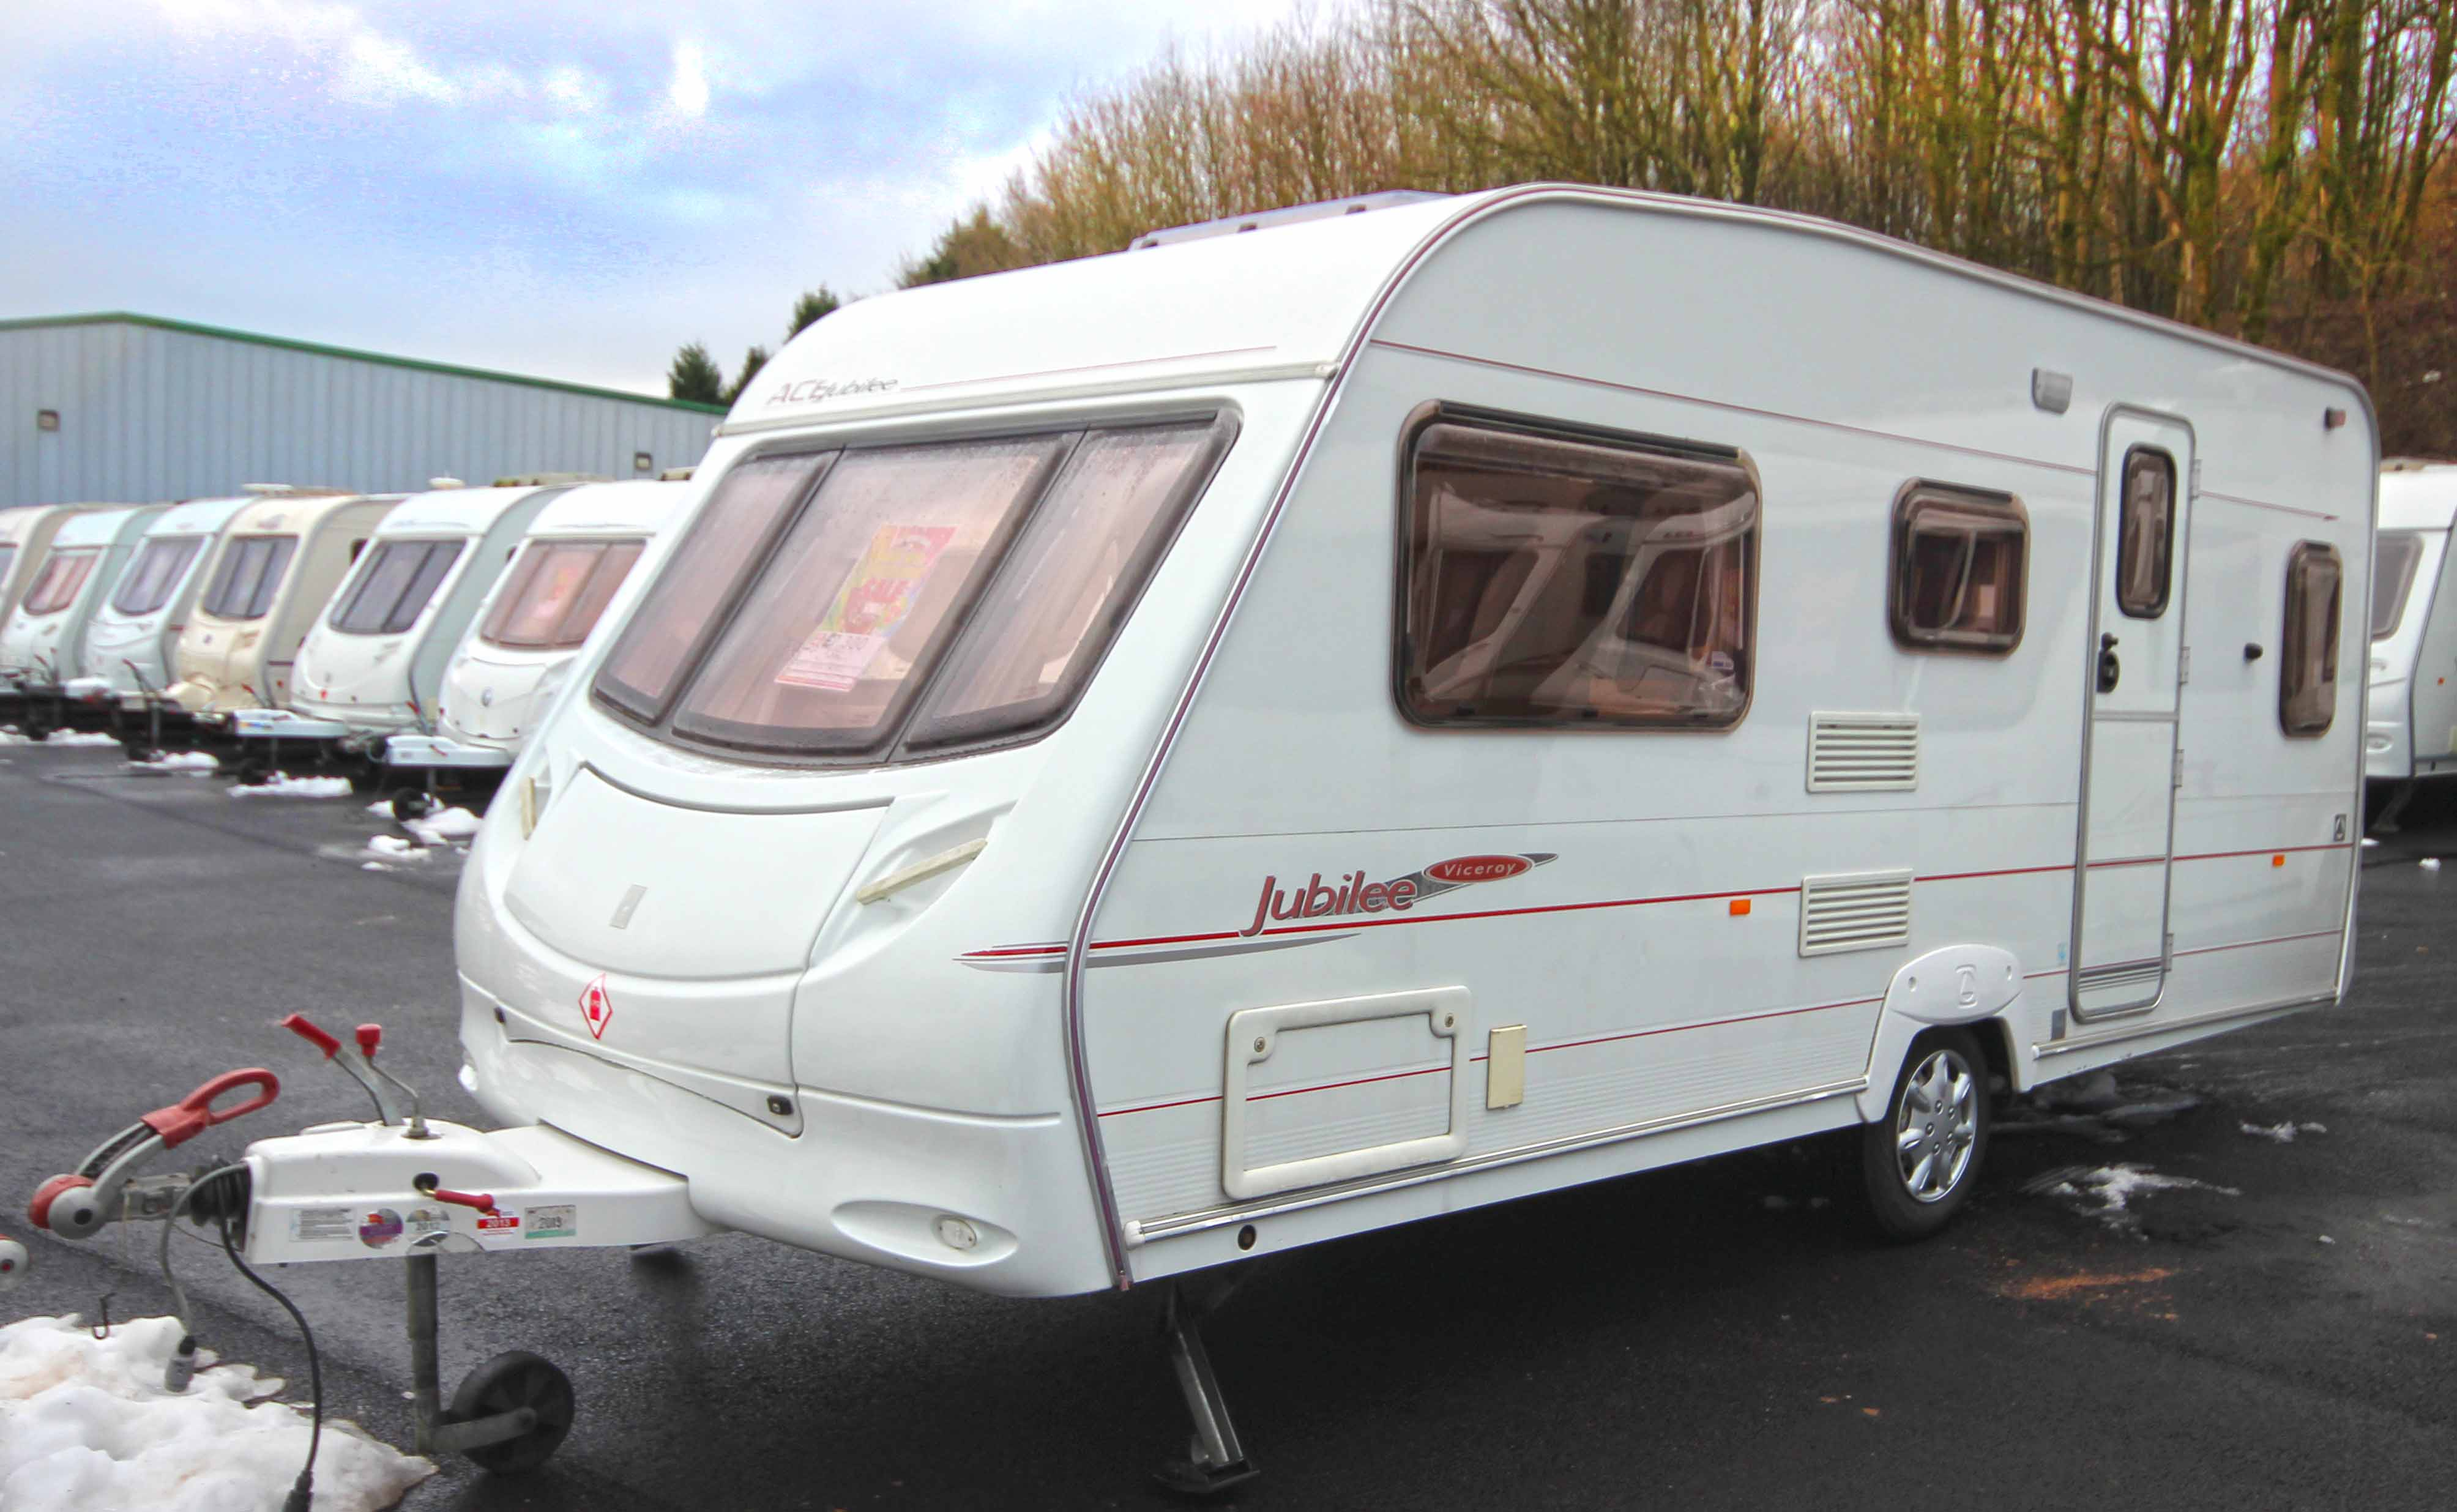 Kina Campers 1 4 5 berth Ace Jubilee Viceroy 2